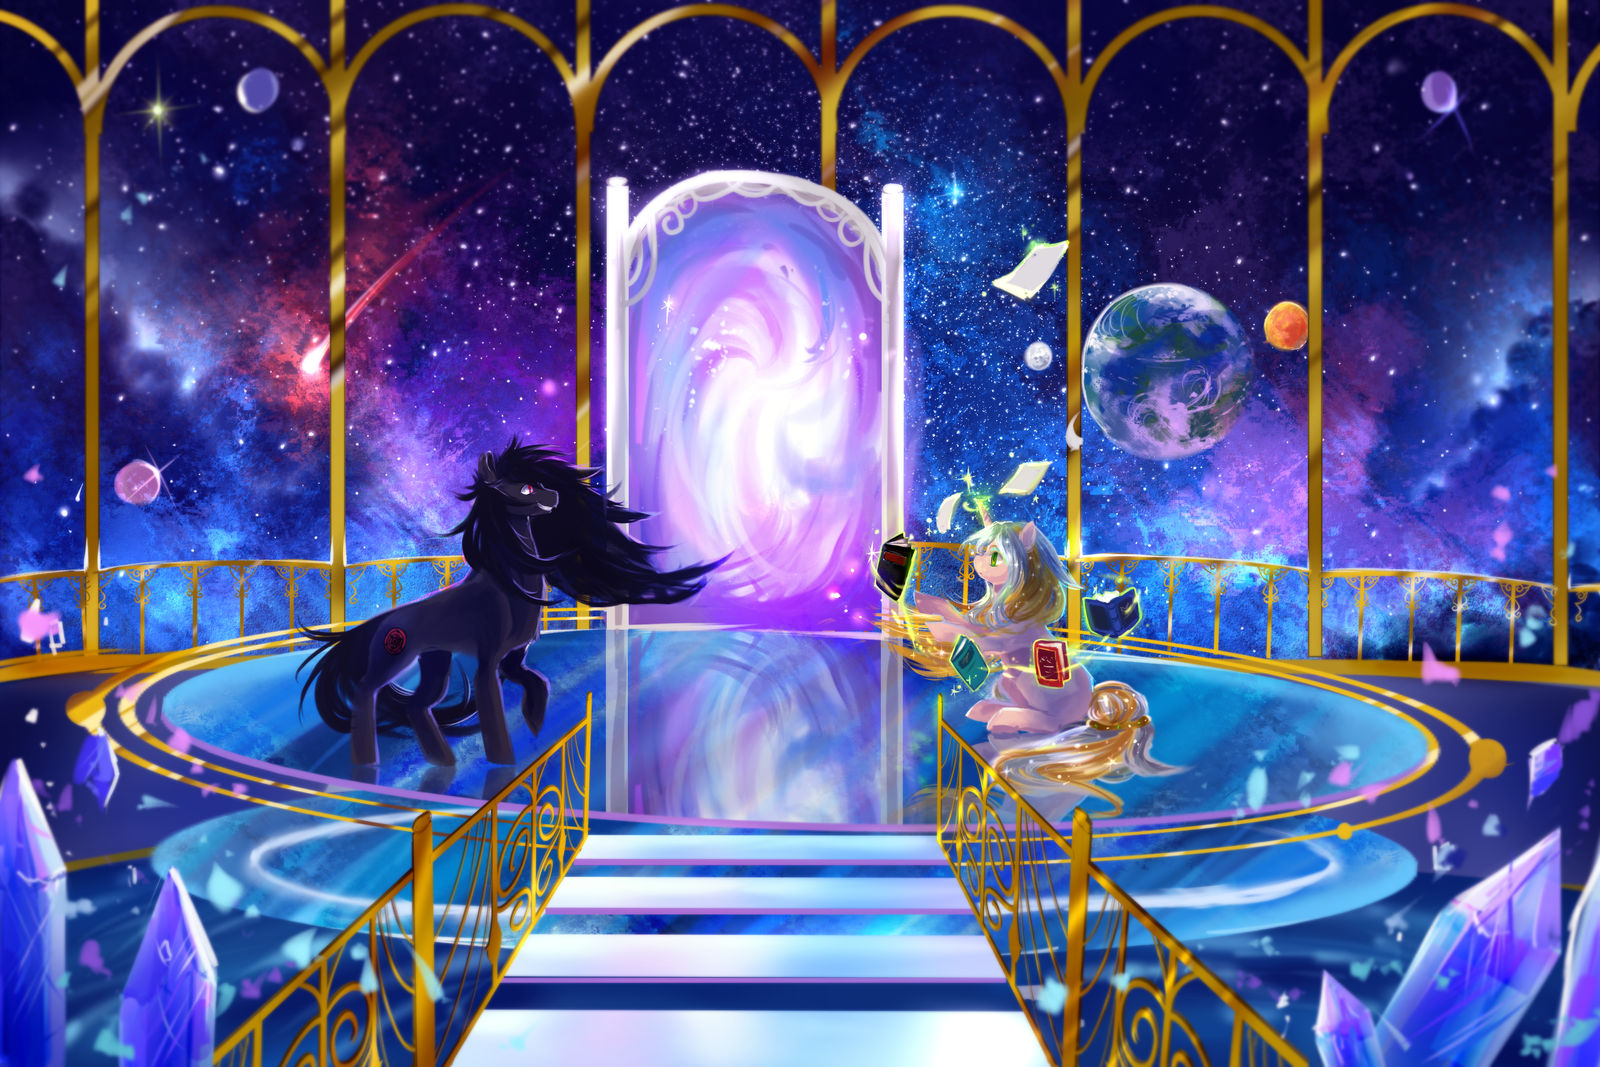 MLP C: Another realm by AquaGalaxy